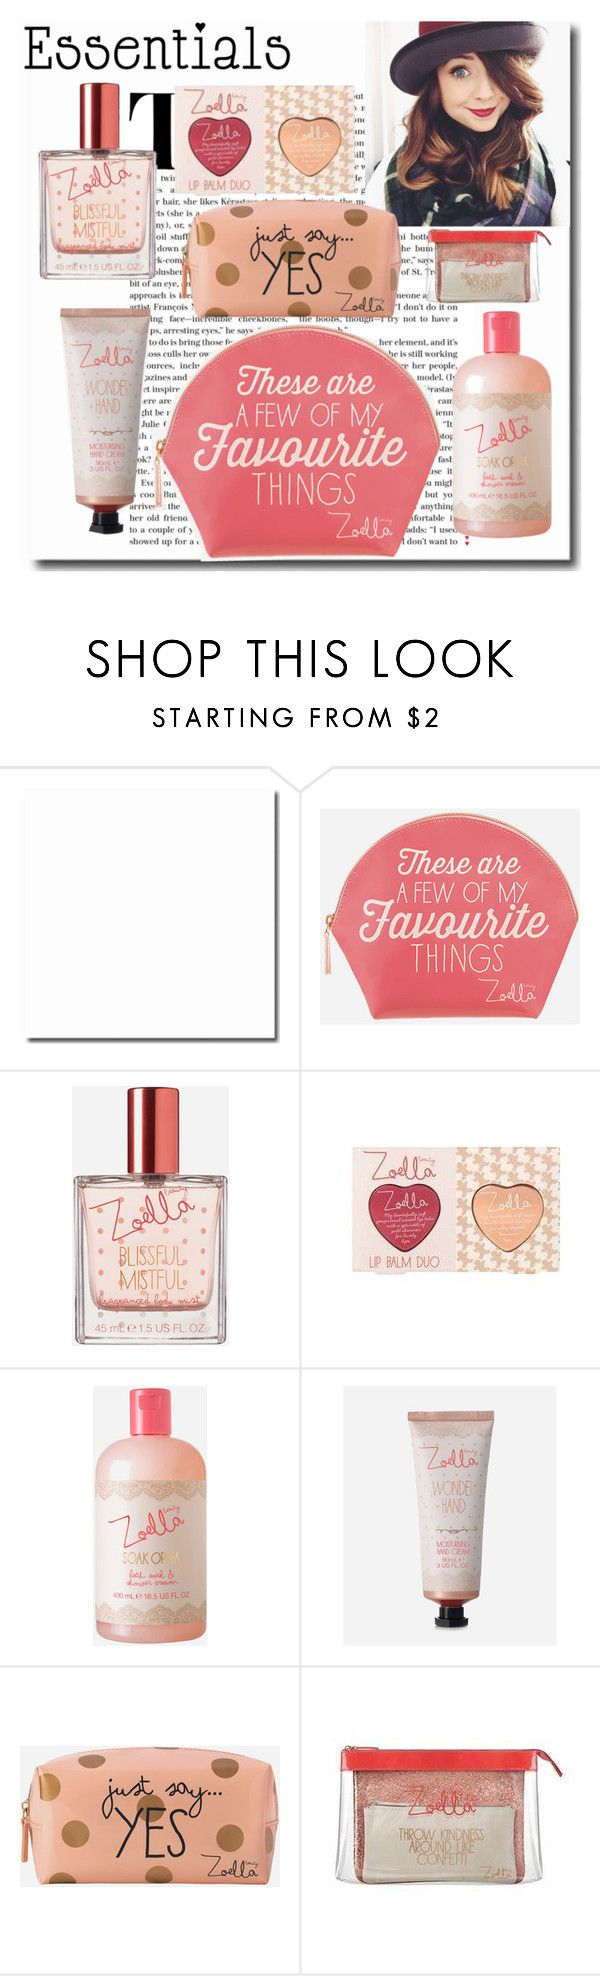 """""""Zoella Makeup Bag Staples"""" by emmy-124fashions ❤ liked on Polyvore featuring beauty, Zoella Beauty, contestentry, PVStyleInsiderContest and makeupbagstaples"""